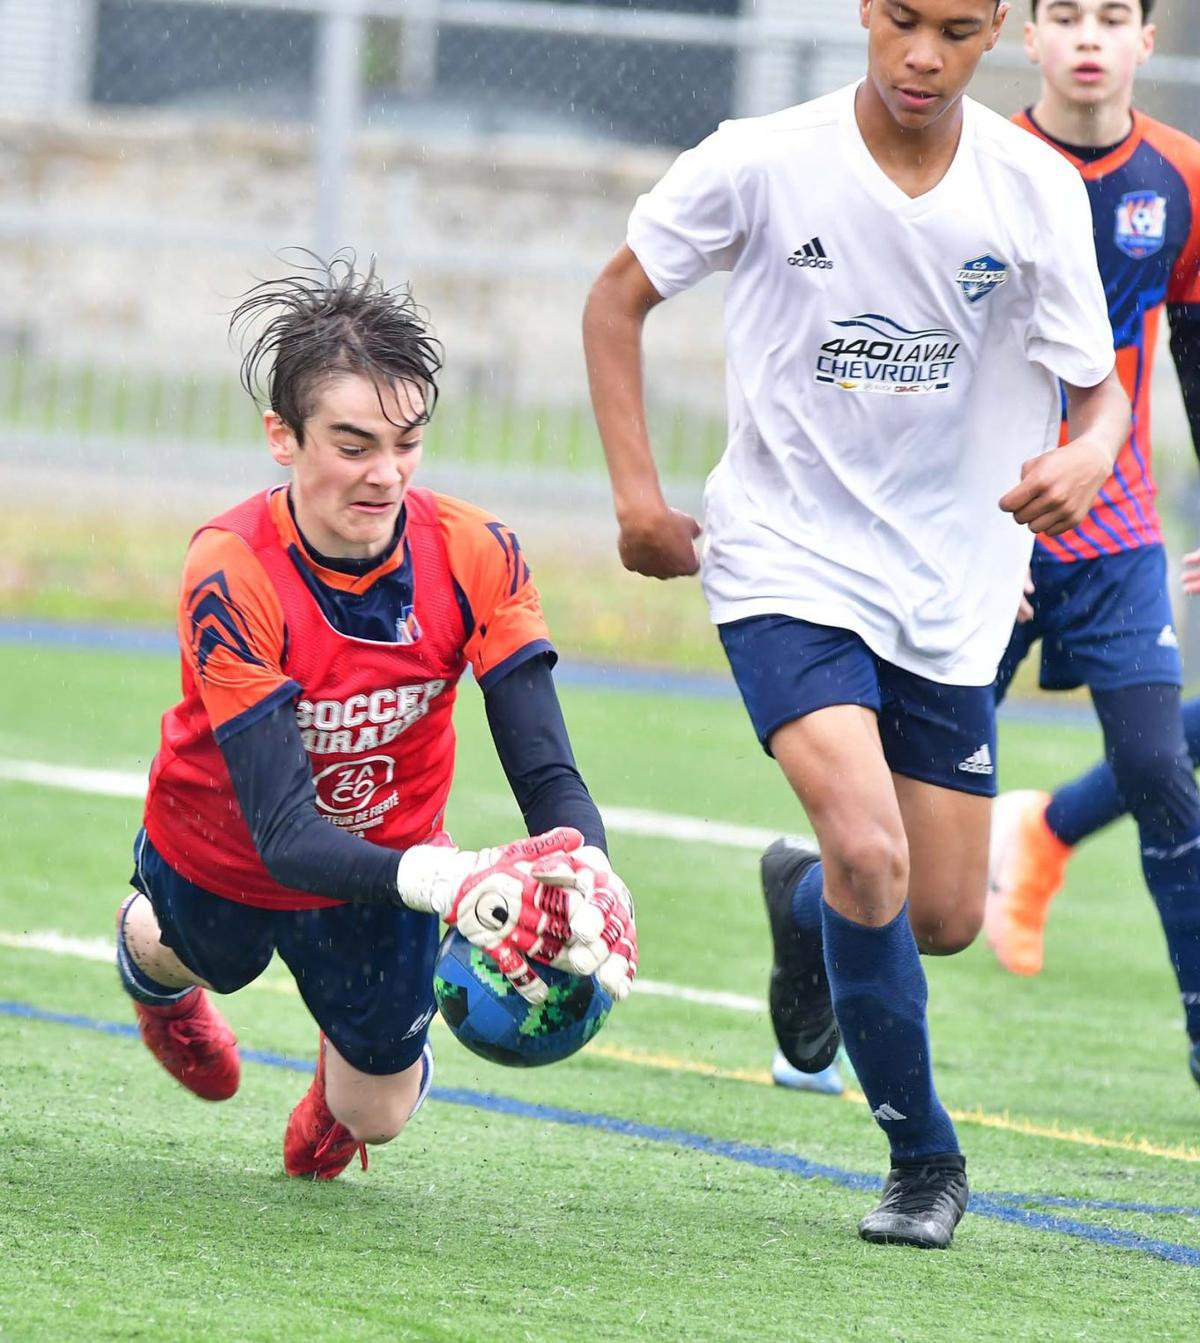 Mirabel Not Let Down By 2-1 Loss Against Fabrose